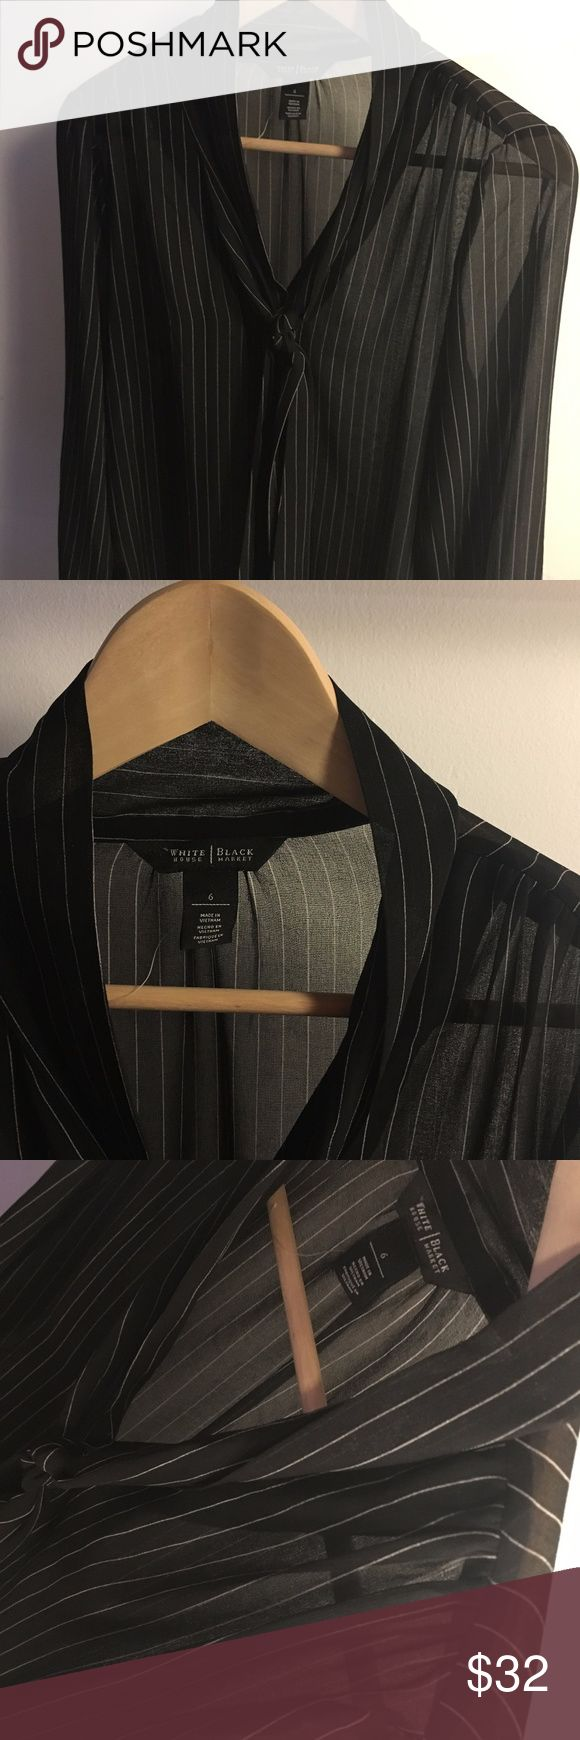 WHBM Sheer Black Blouse with Stripes - NEW item. White House Black Market Blous New - Never Worn. Black Sheer with Shite Stripes Tie Bow Neck Size: Medium Would look great under blazer, wool romper or cashmere sweater. Dress down or up, going out or work appropriate layered over cami. White House Black Market Tops Blouses